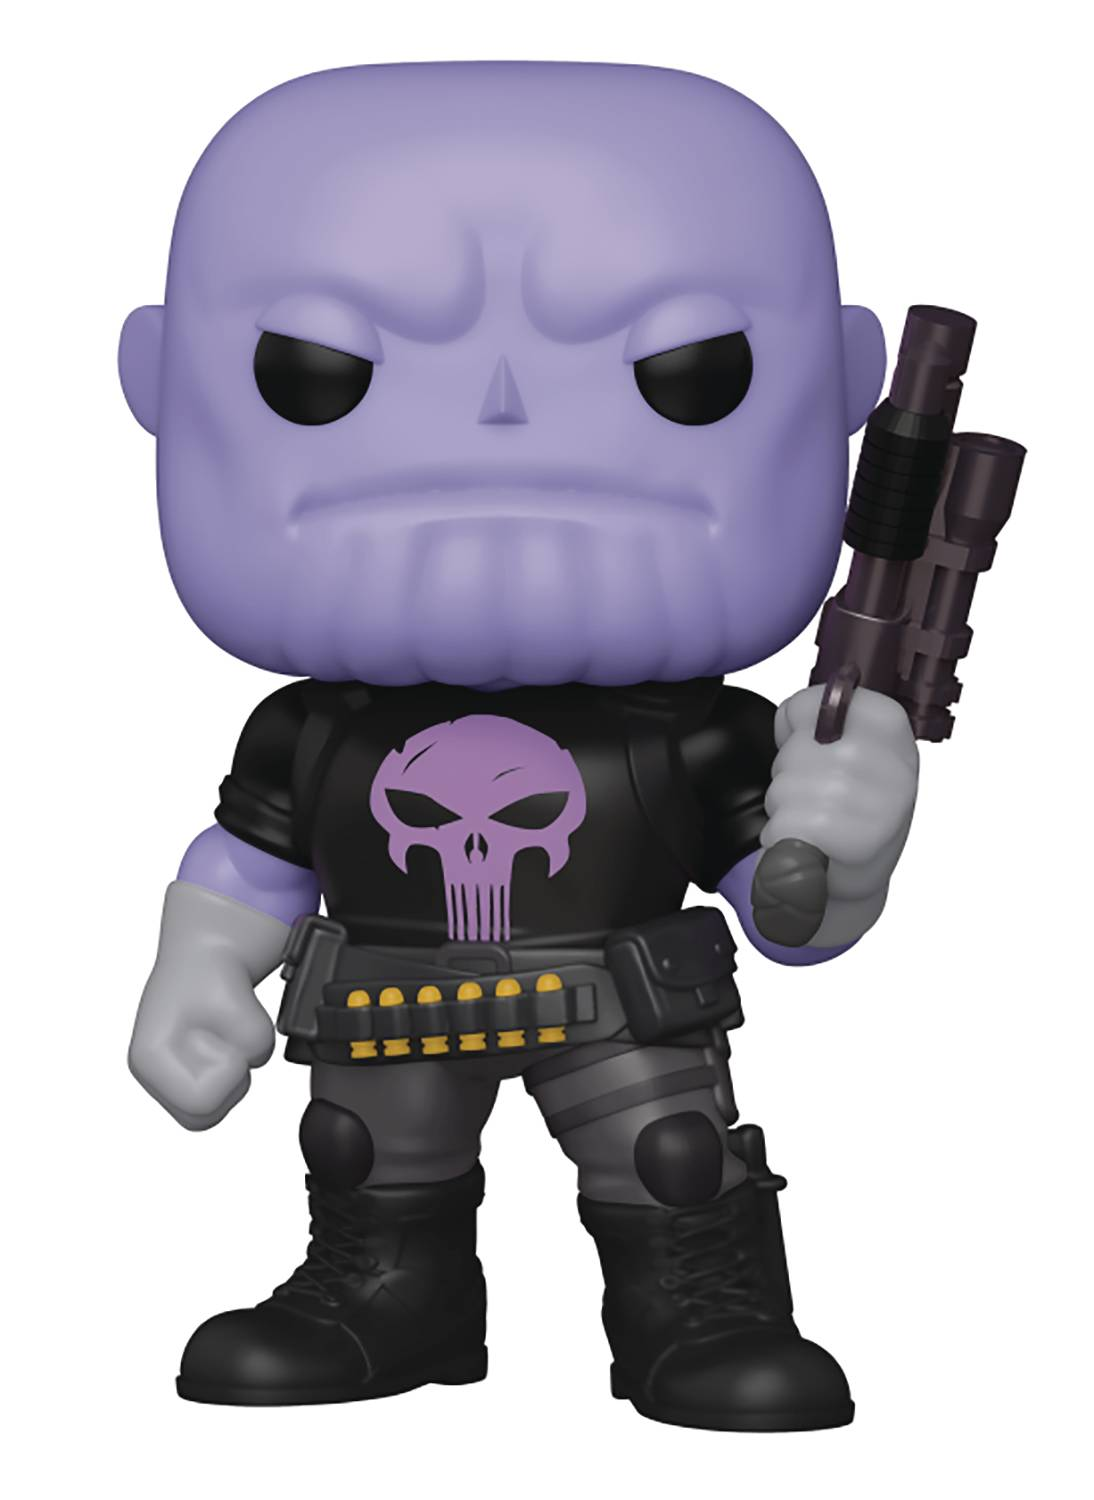 POP SUPER MARVEL HEROES THANOS EARTH-18138 PX 6IN VIN FIG (C